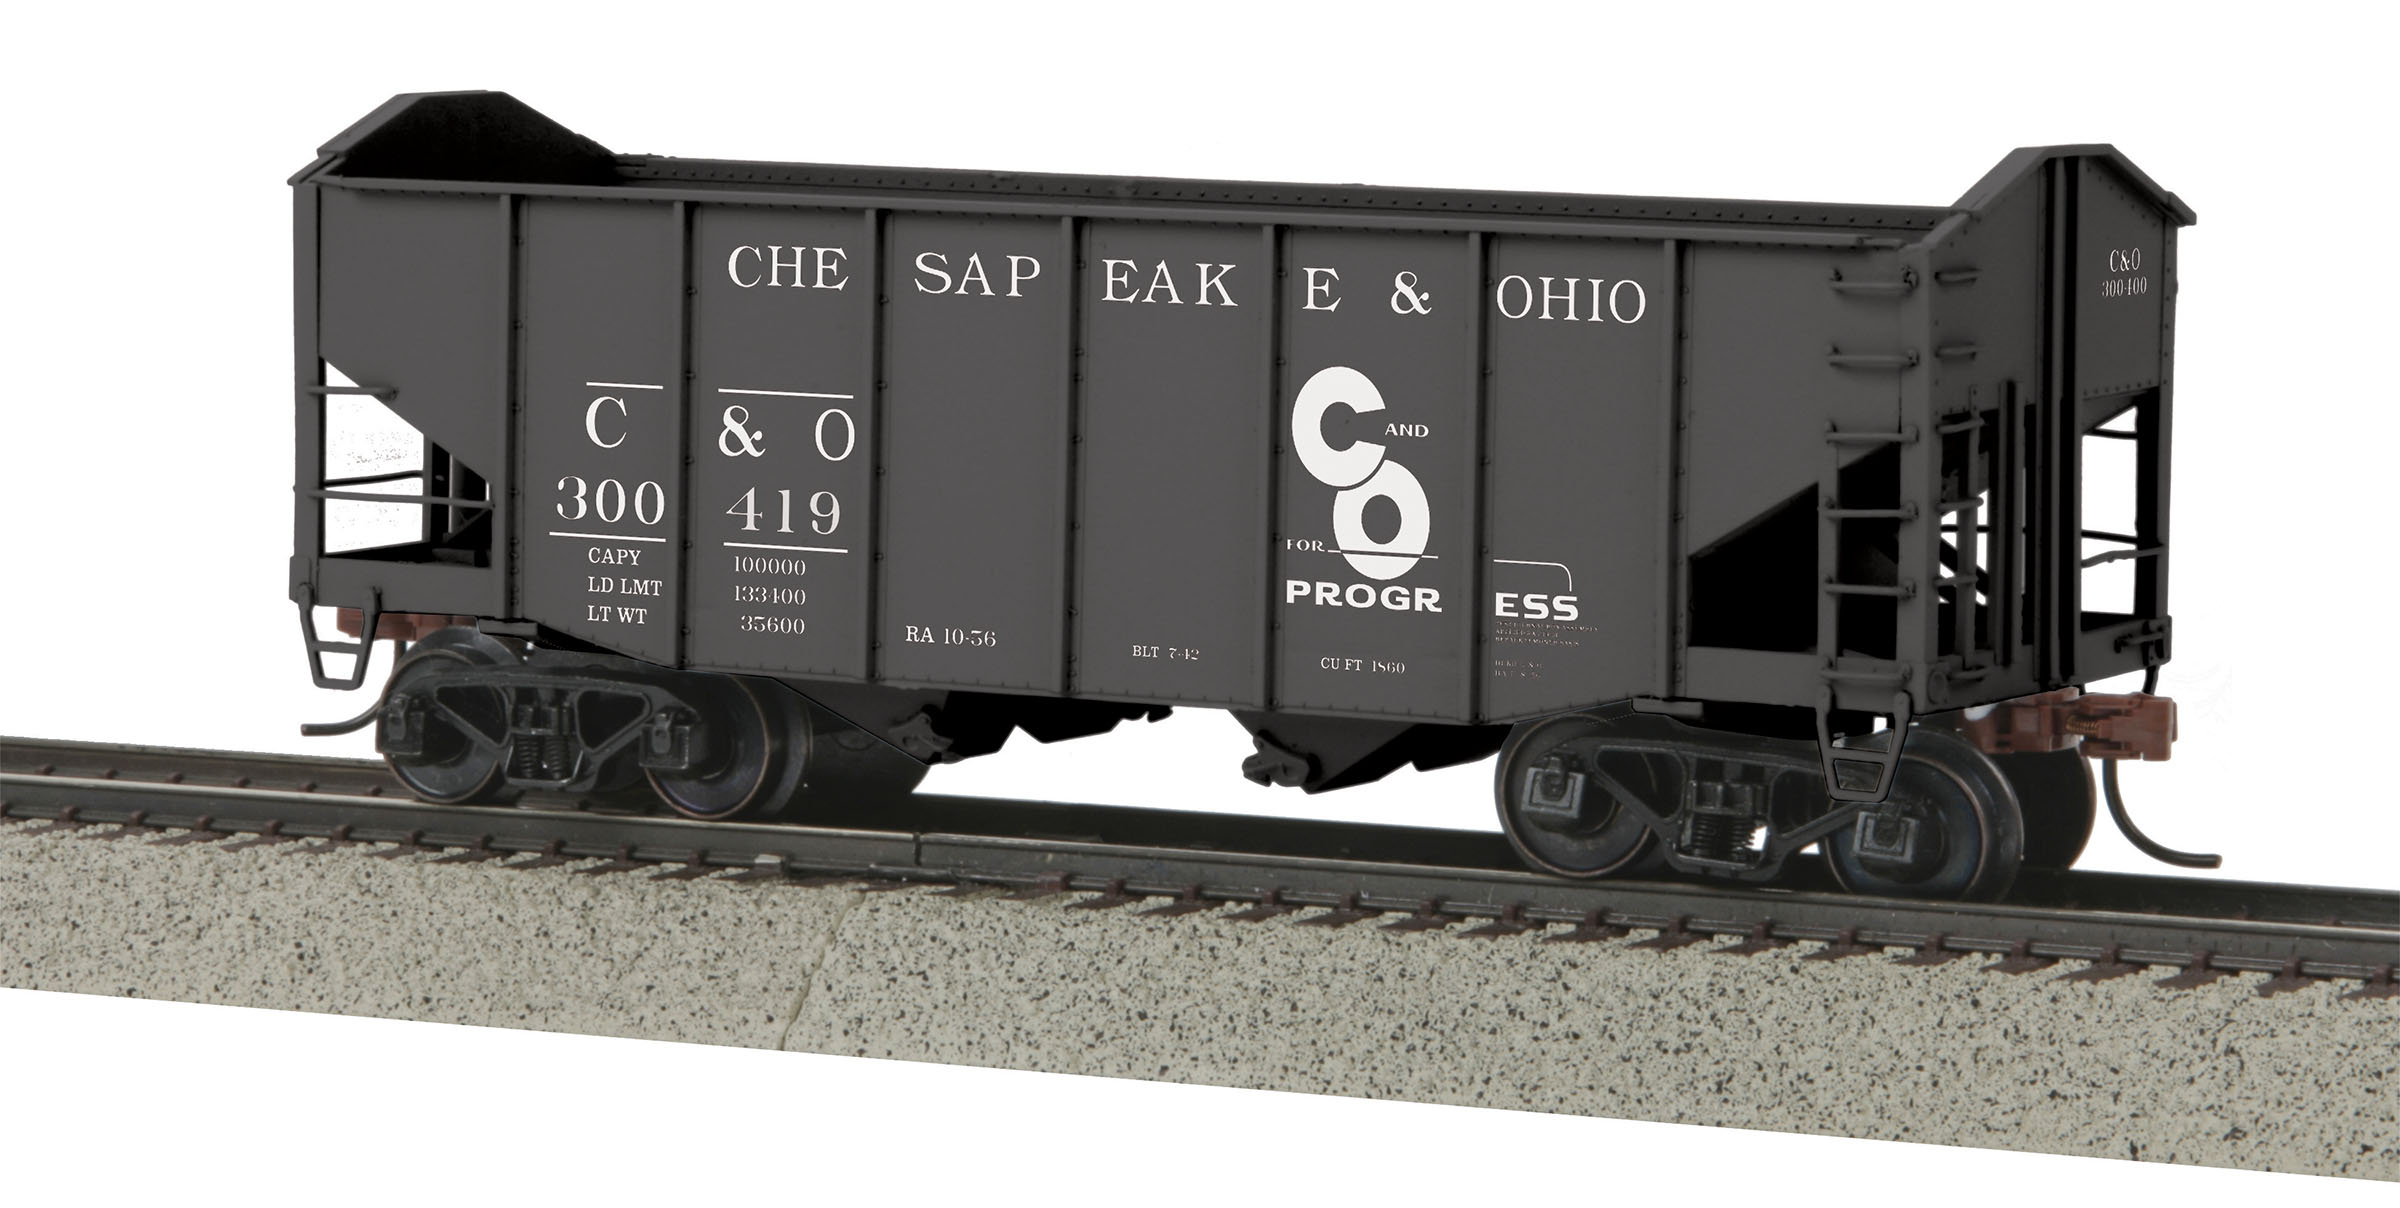 MTH 3575073 2Bay Fish Belly Hopper Car Scale Wheel C&O #300419